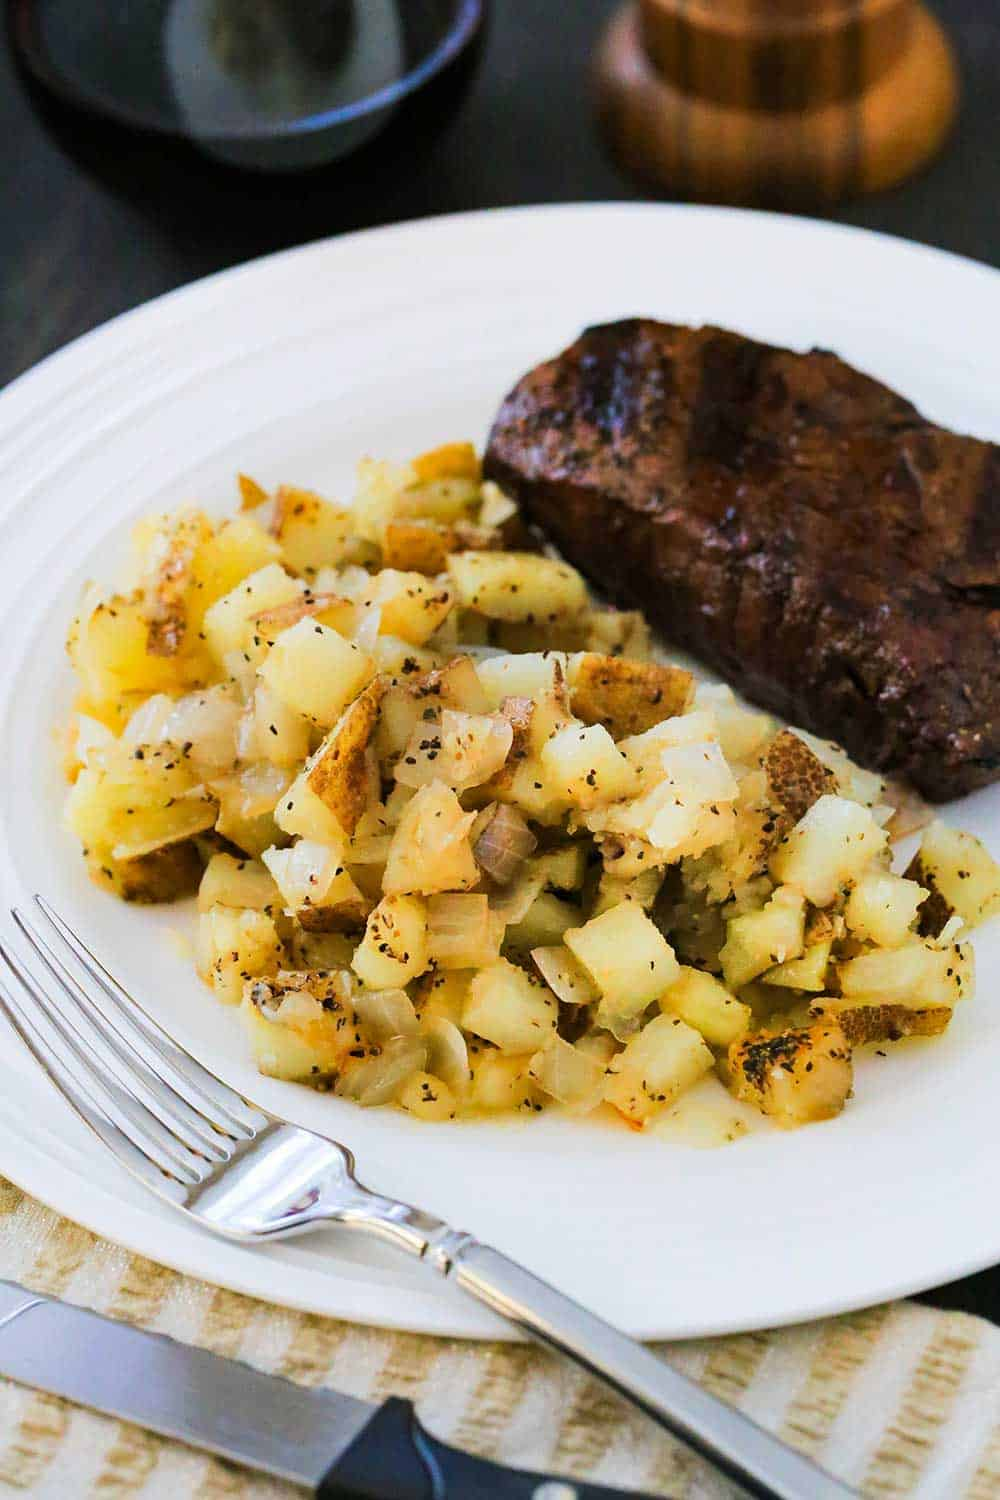 A white dinner plate loaded with roasted potatoes and a grilled steak with a fork nearby.